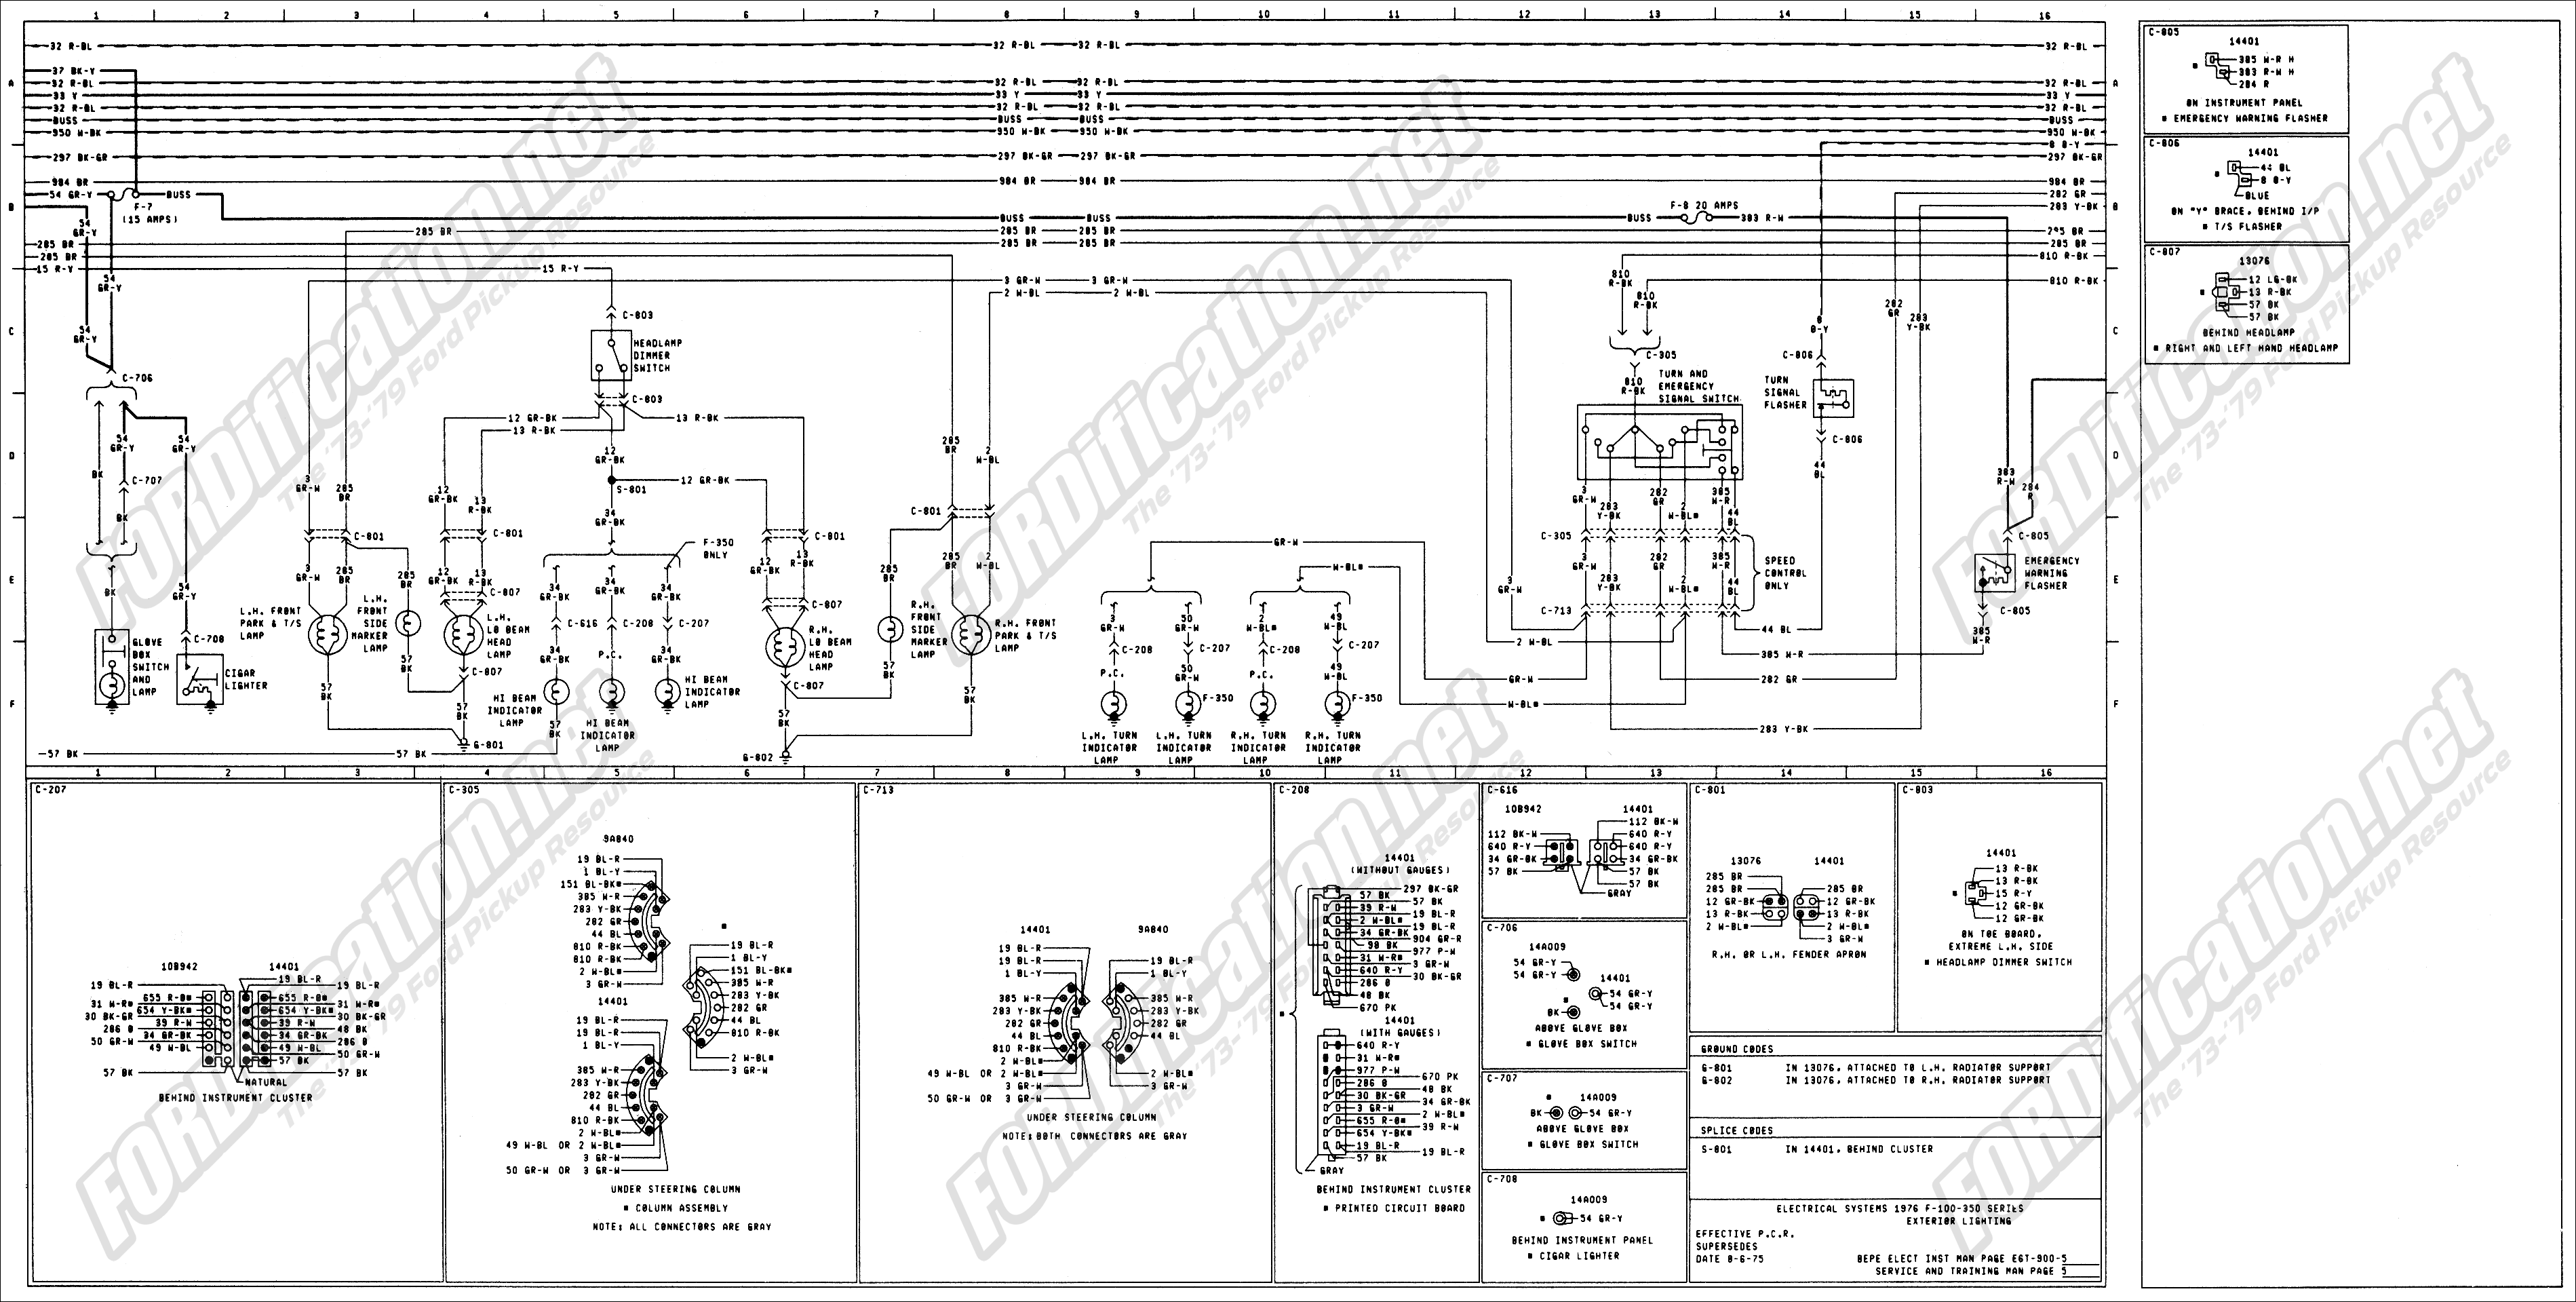 1968 ford f100 wiring diagram 1968 image wiring changed column in 1968 f100 help ford truck enthusiasts forums on 1968 ford f100 wiring diagram